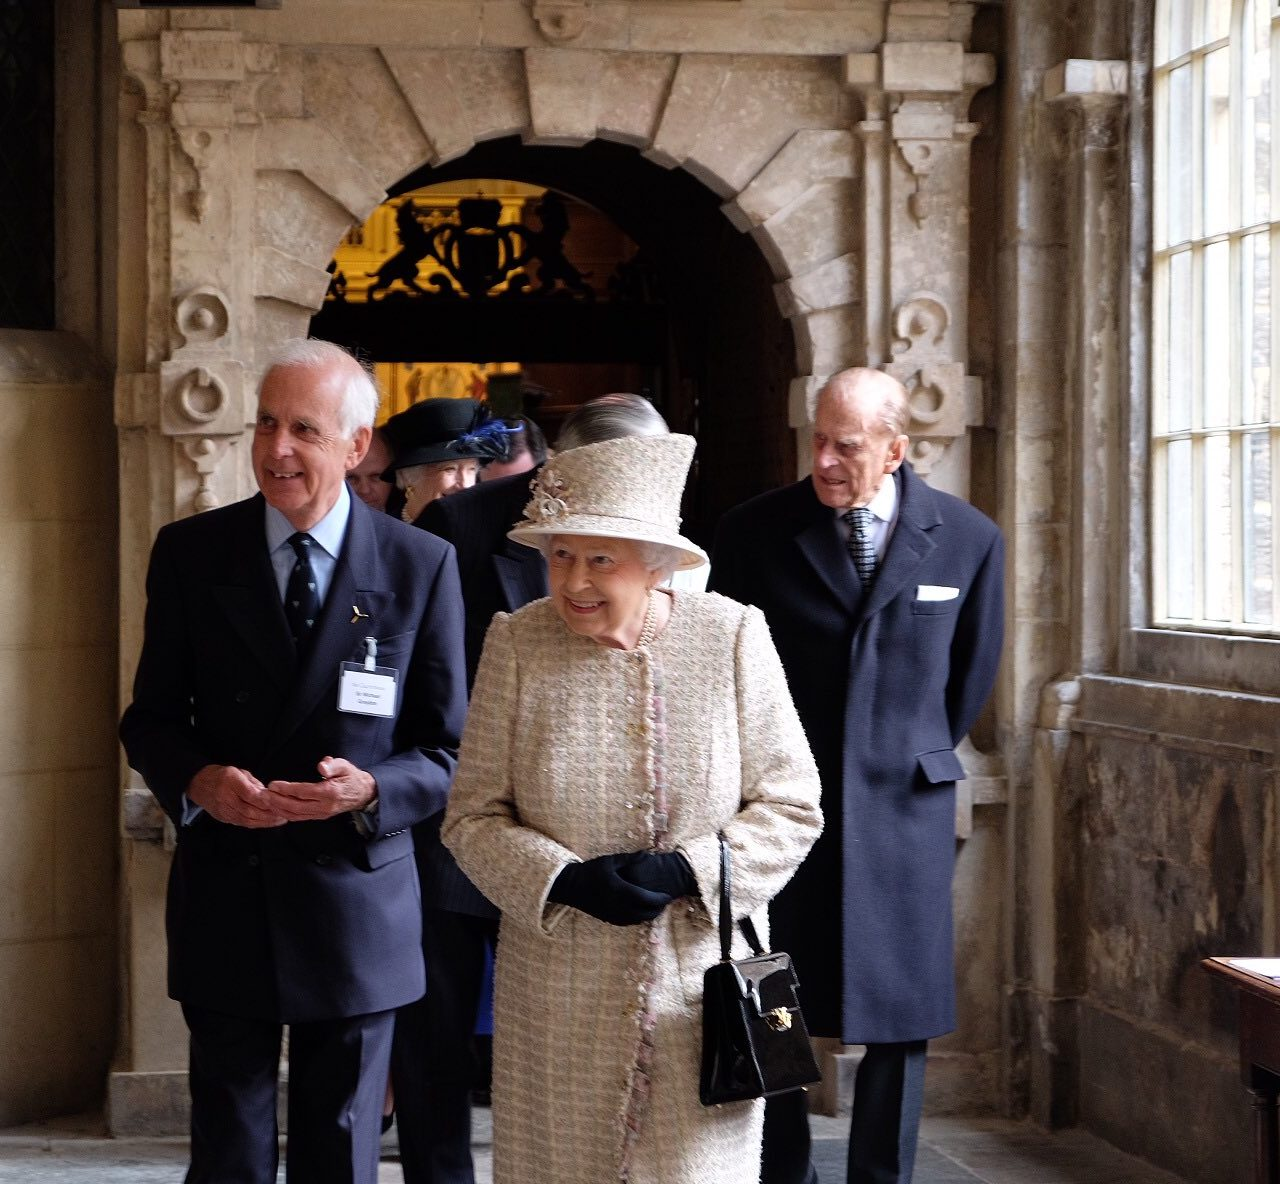 The Queen, accompanied by The Duke of Edinburgh, Royal Governors opened the new redevelopment at Sutton's Hospital